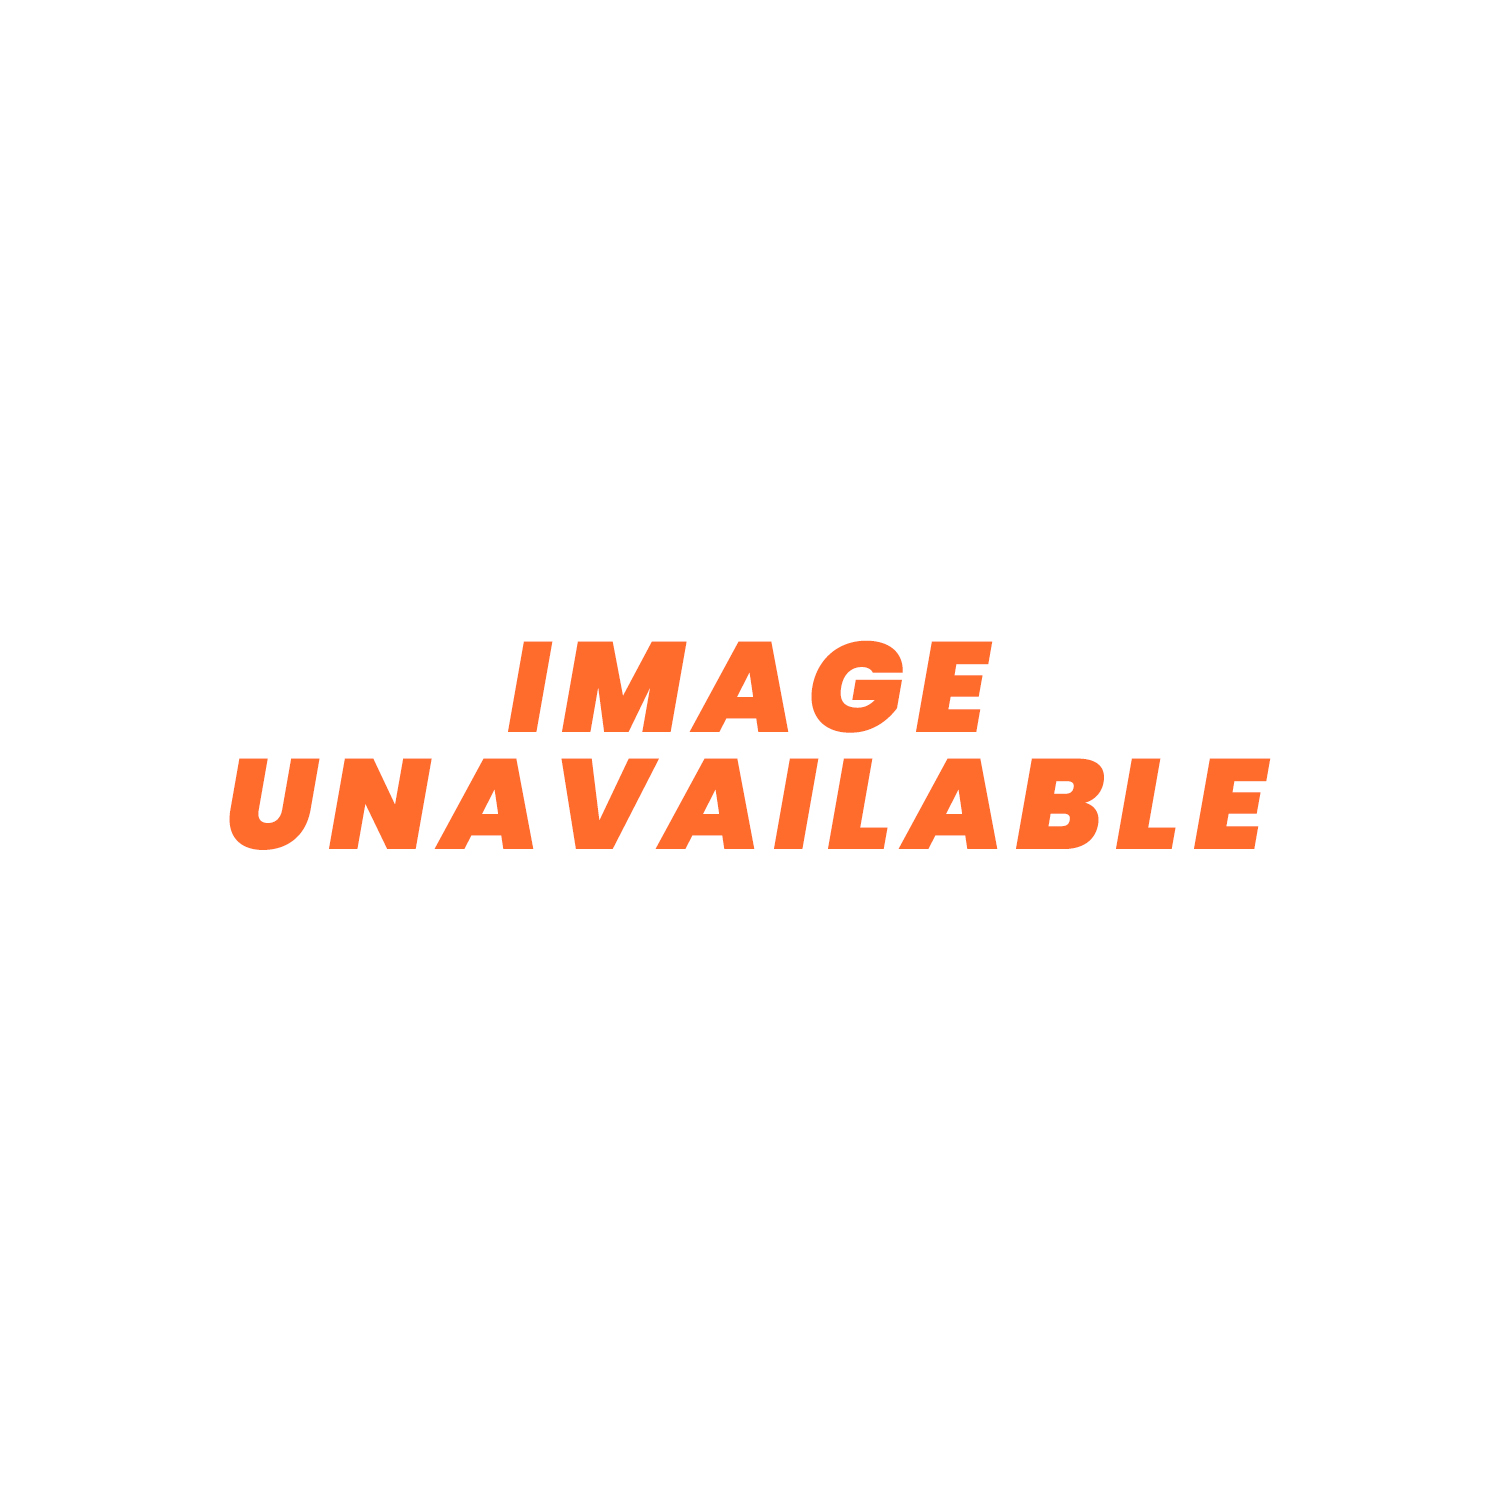 hs2000_kit propex gas heater single outlet 12v propex heater wiring diagram at alyssarenee.co